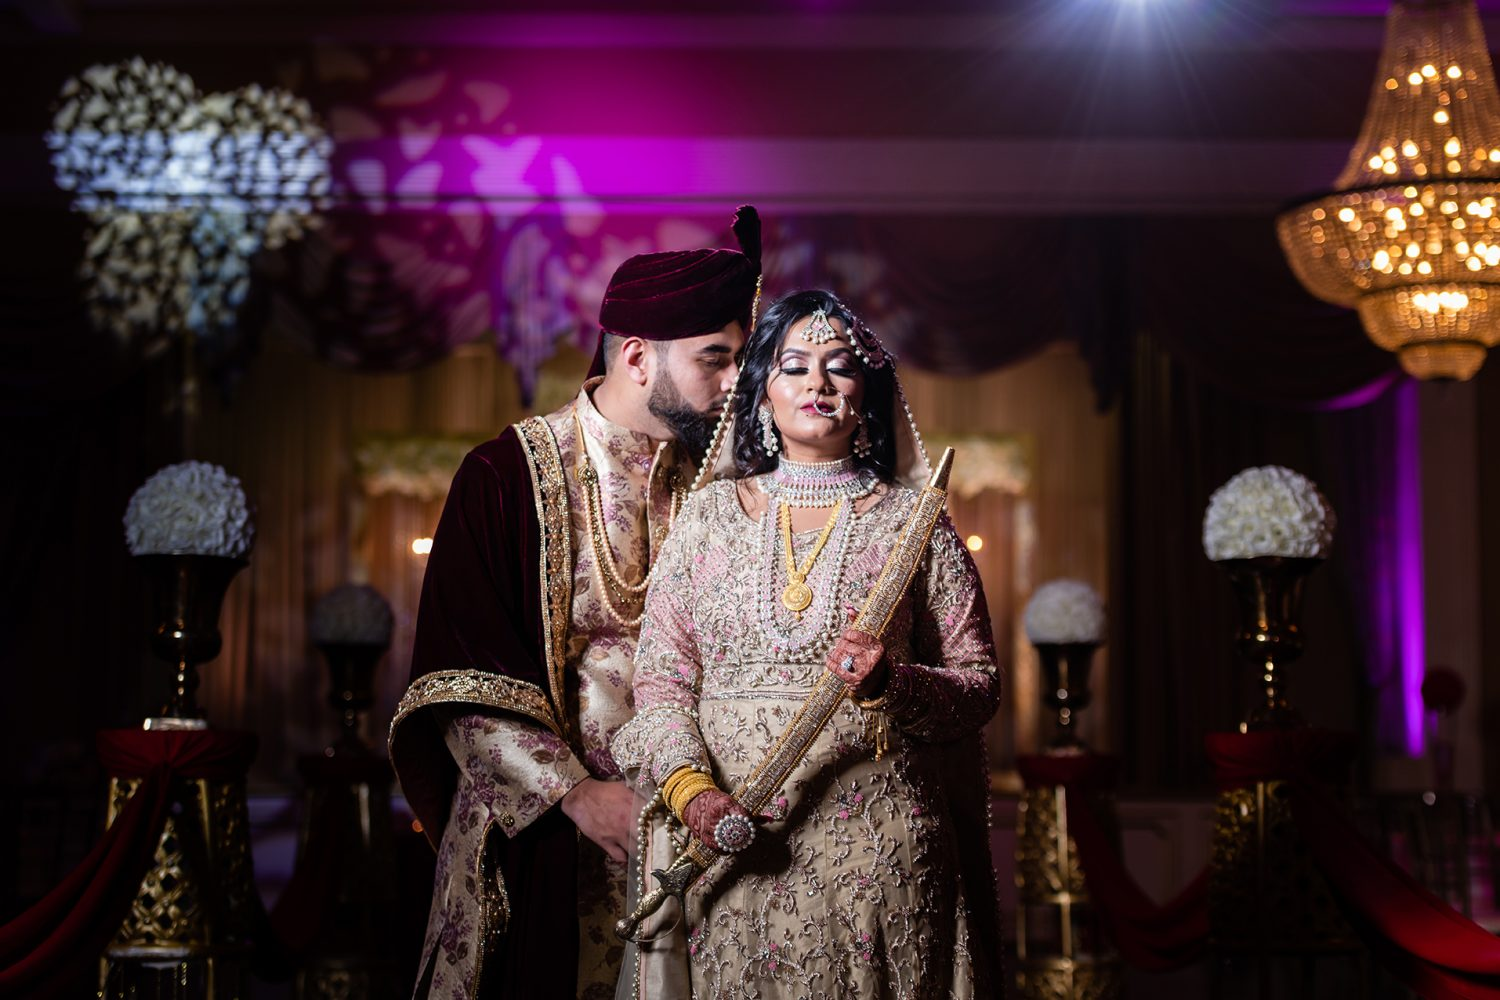 south_asian_wedding_photography_dhoom_studio_new_york66-e1573086437349 SOUTH ASIAN WEDDINGS